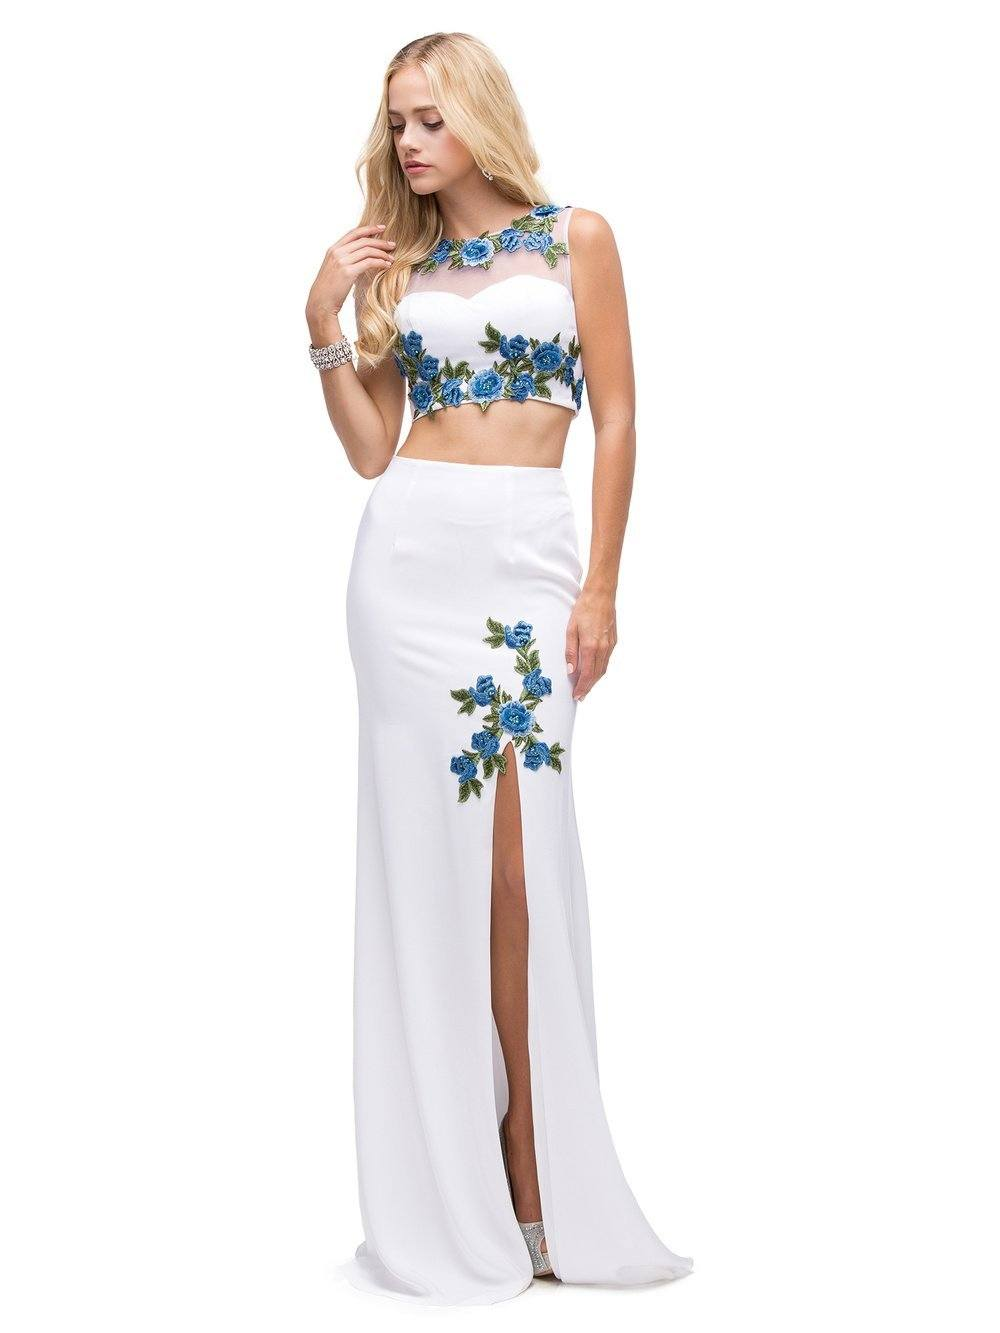 db7a32f80219 Two-Piece floral Prom Dress DQ9820-Dancing queen-Simply Fab Dress ...